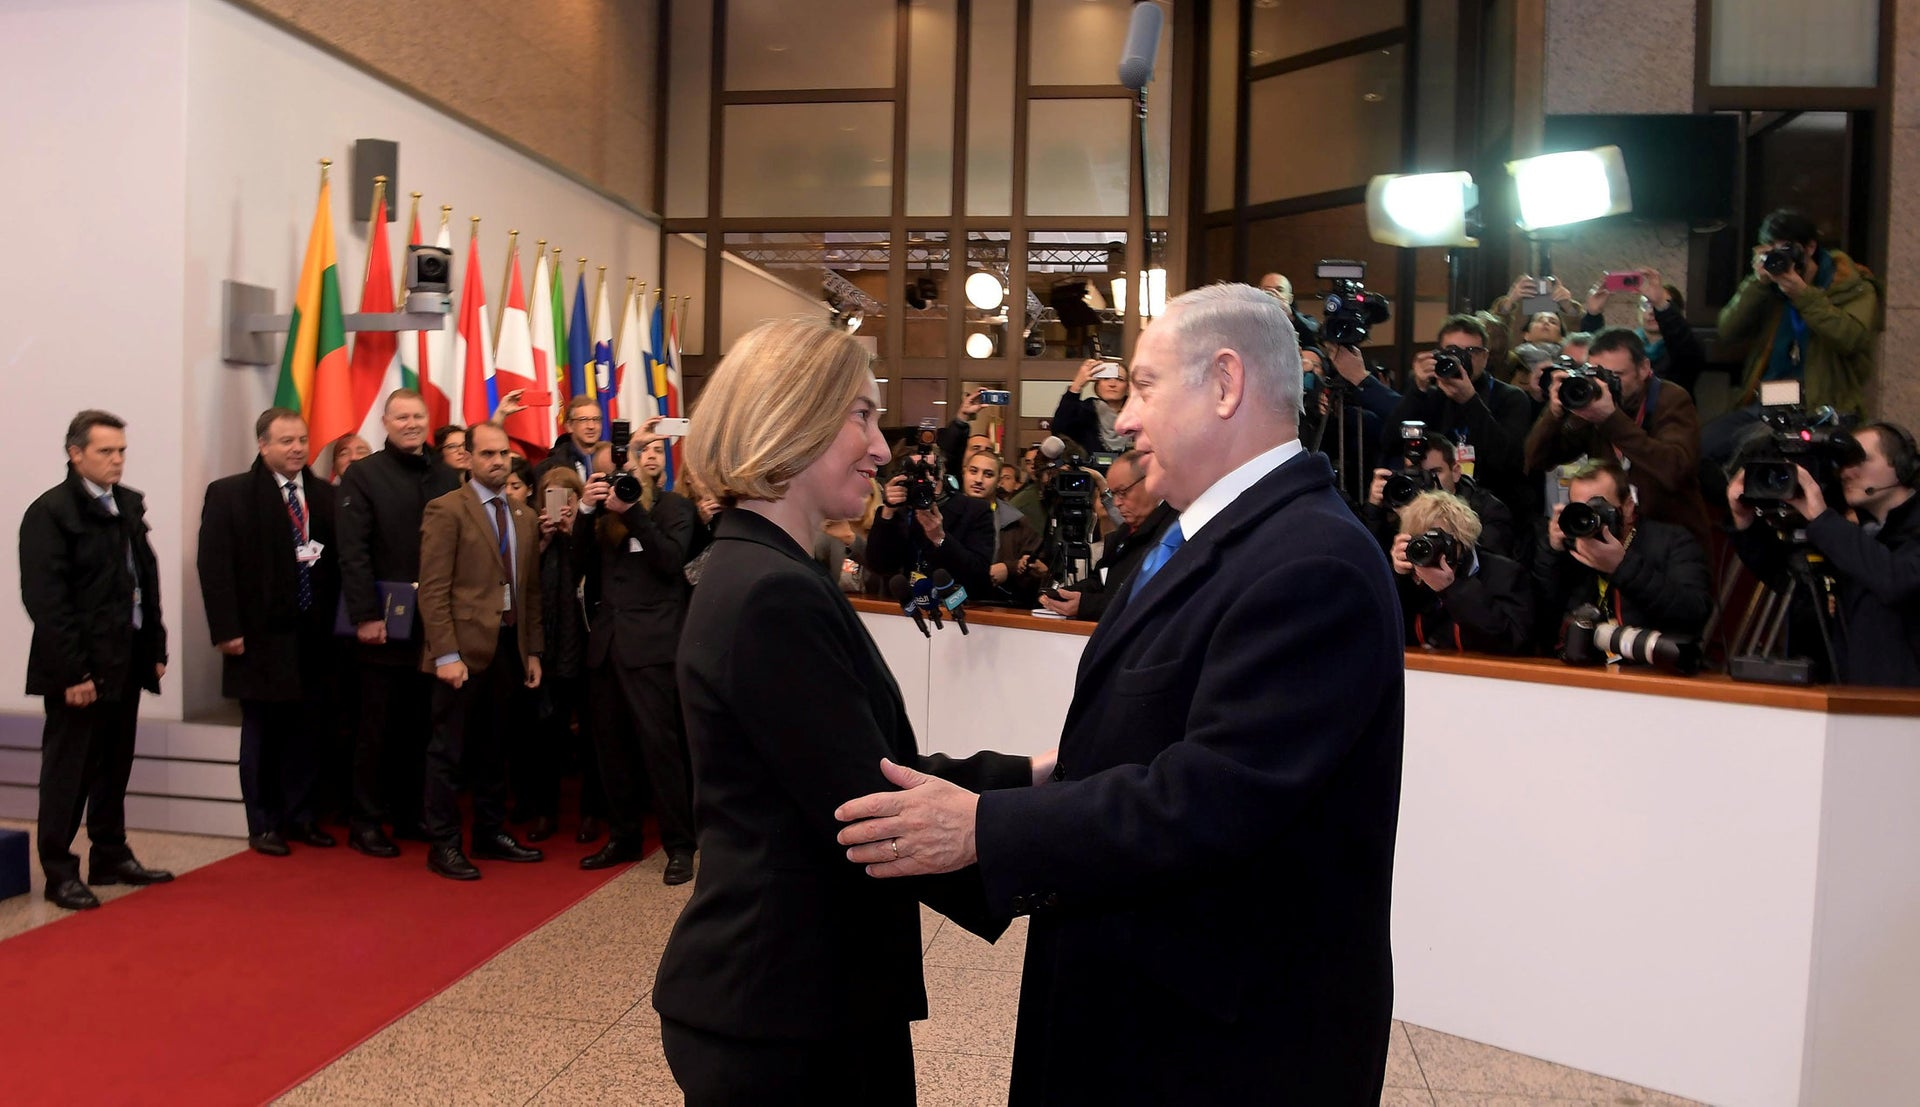 European Union foreign policy chief Federica Mogherini meeting with Prime Minister Benjamin Netanyahu in Brussels, December 2017.